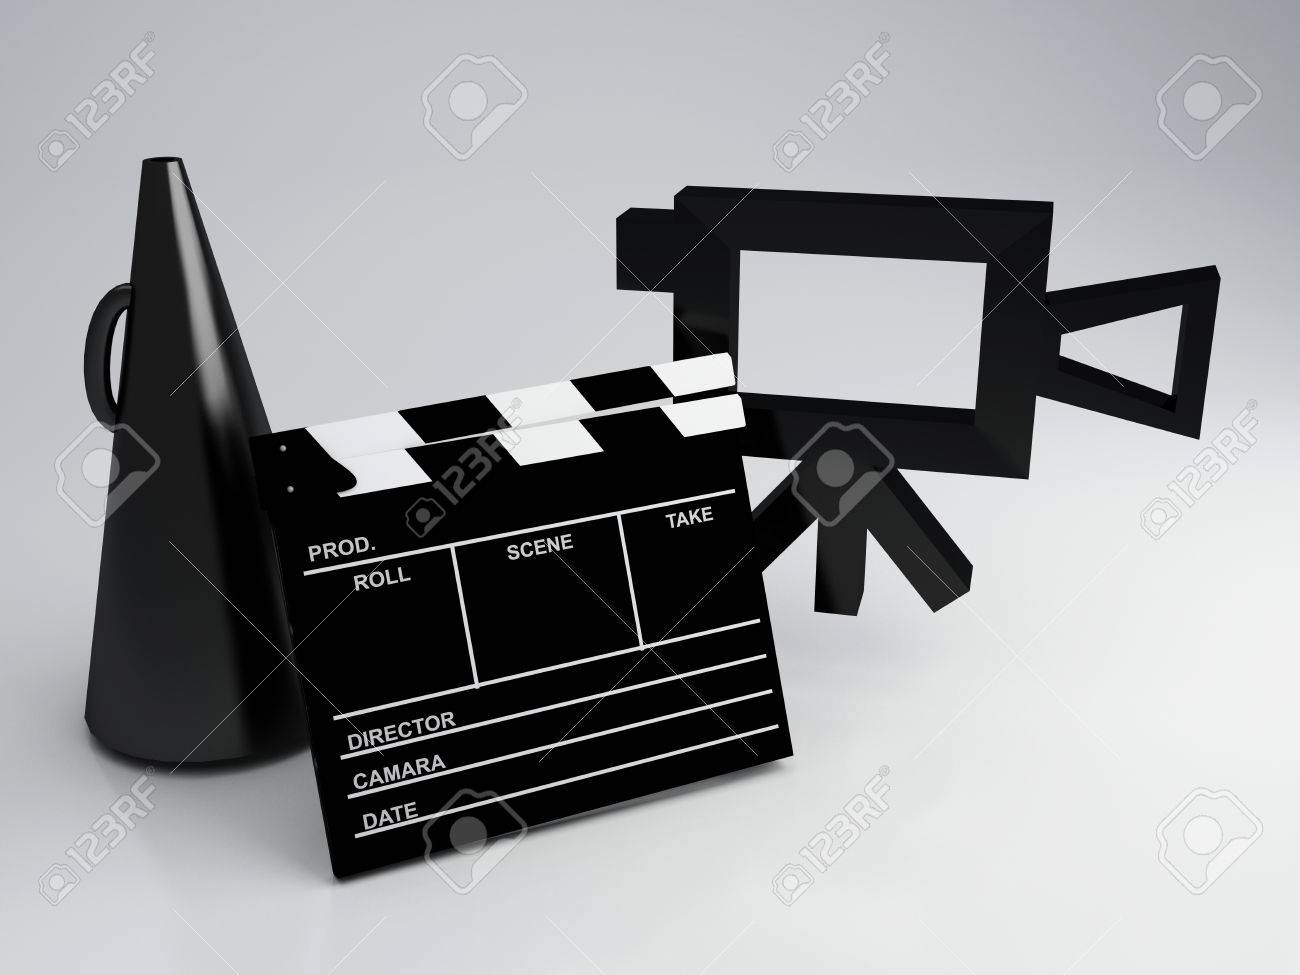 Clapper board and old camera 3d illustration Stock Photo - 25628765